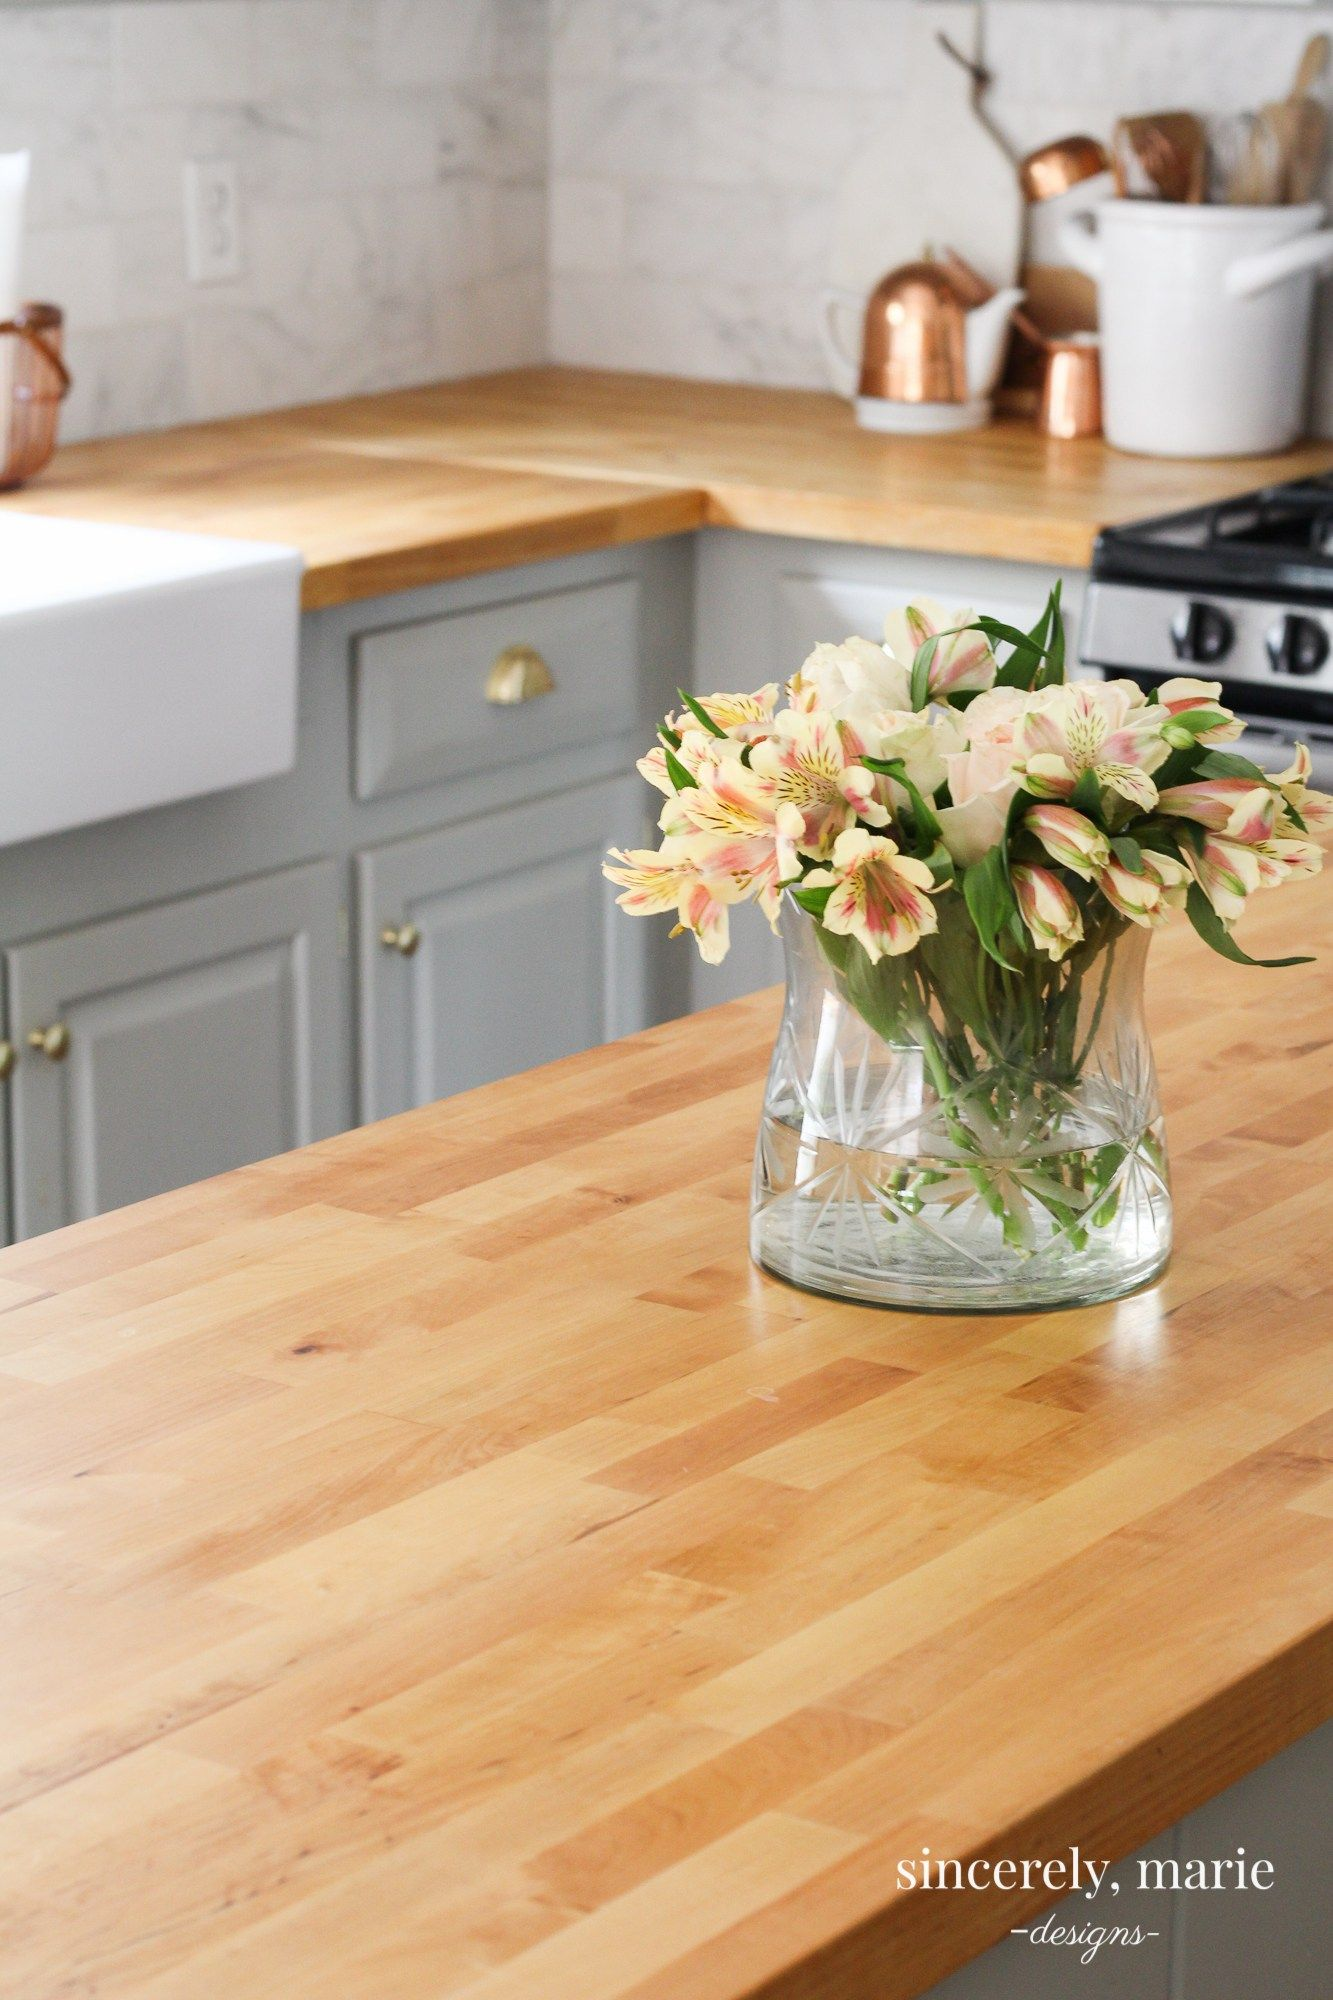 Our Butcher Block Counter Top Review One Year Later With Images